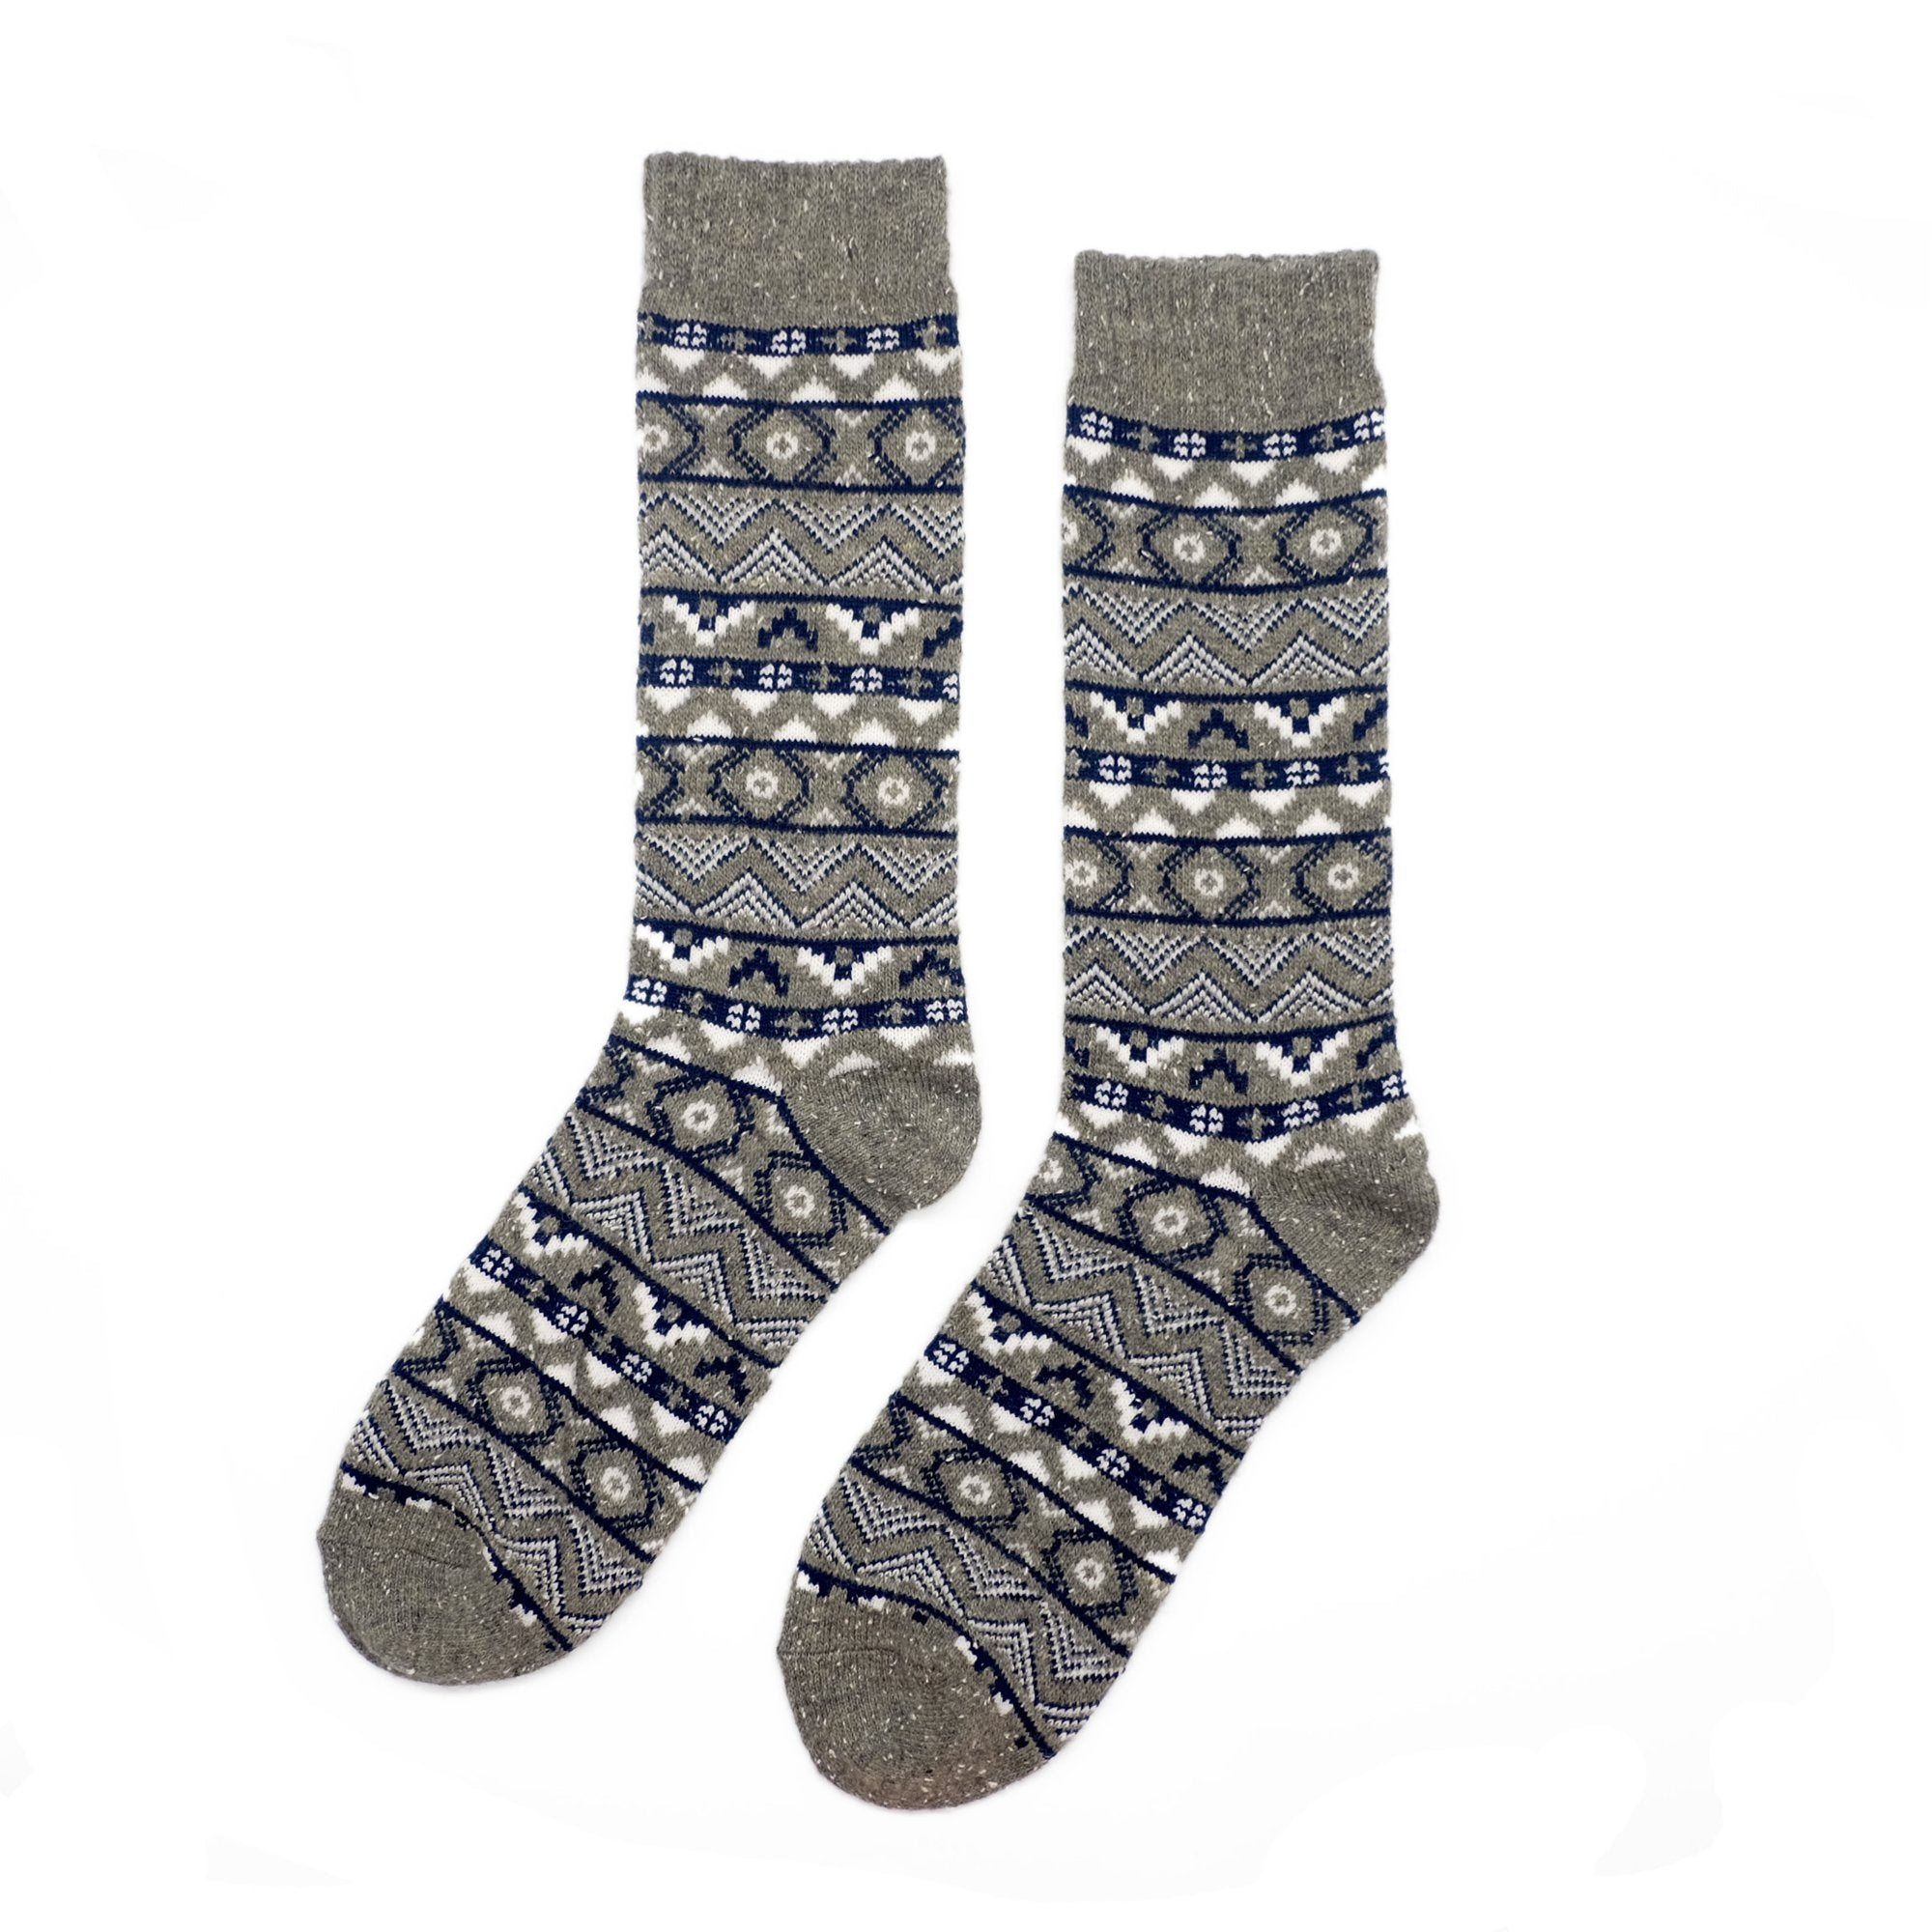 Vuroi Wool Socks - Gray